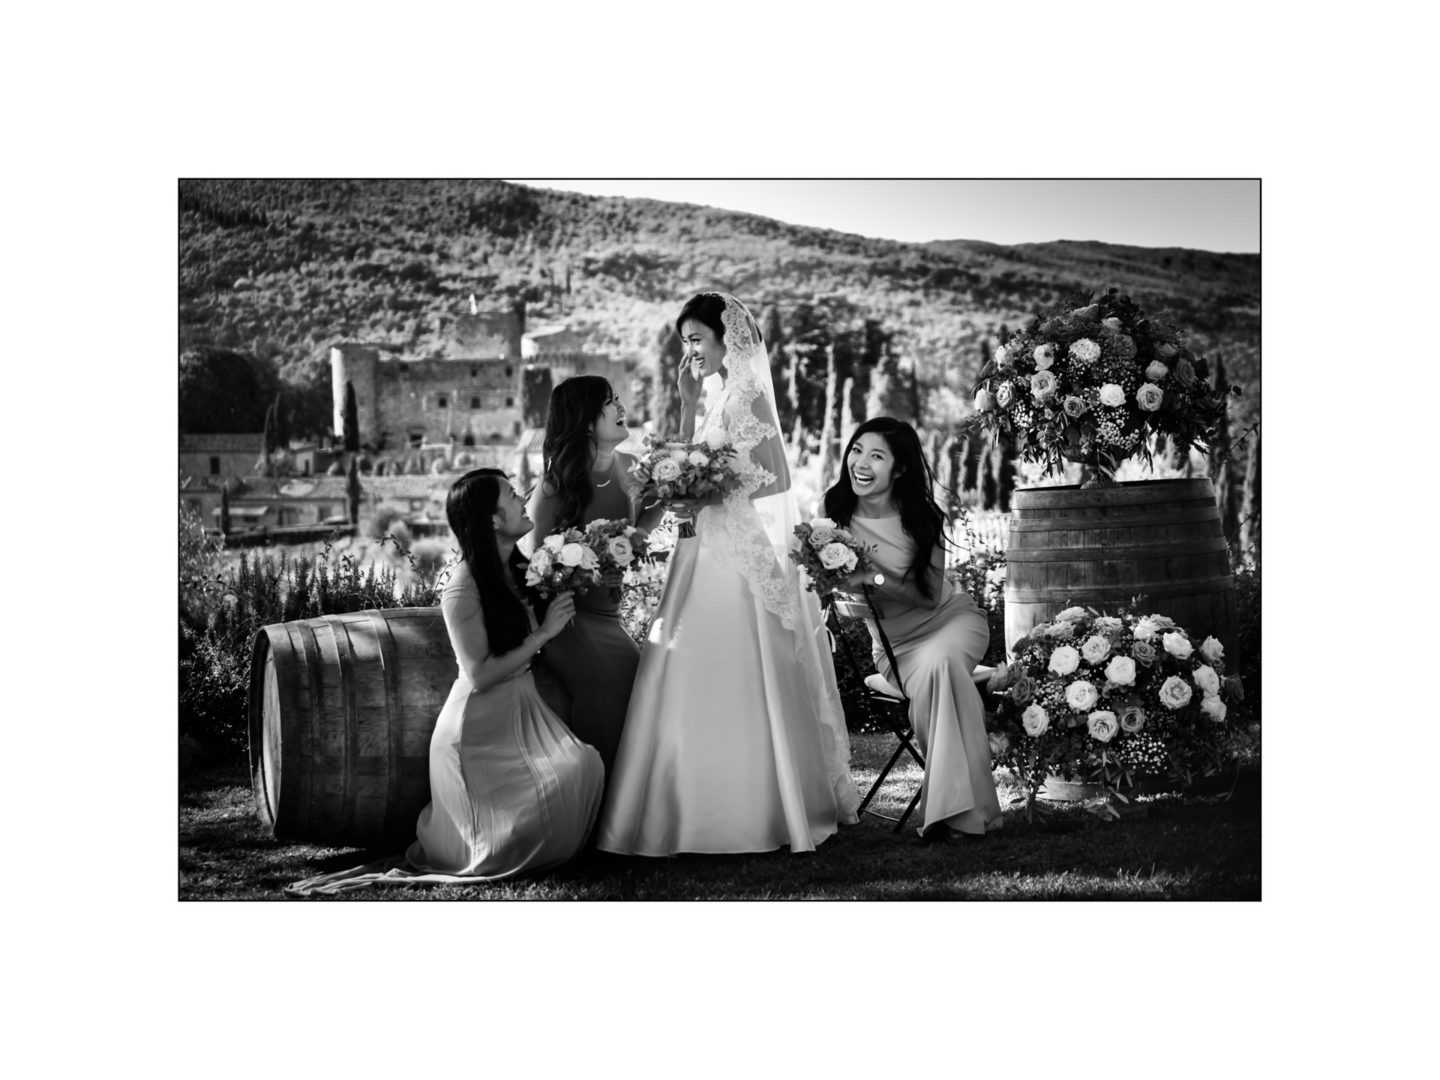 castello-di-meleto-david-bastianoni-photographer-00026 :: Black and white wedding_ Castello di Meleto :: Luxury wedding photography - 25 :: castello-di-meleto-david-bastianoni-photographer-00026